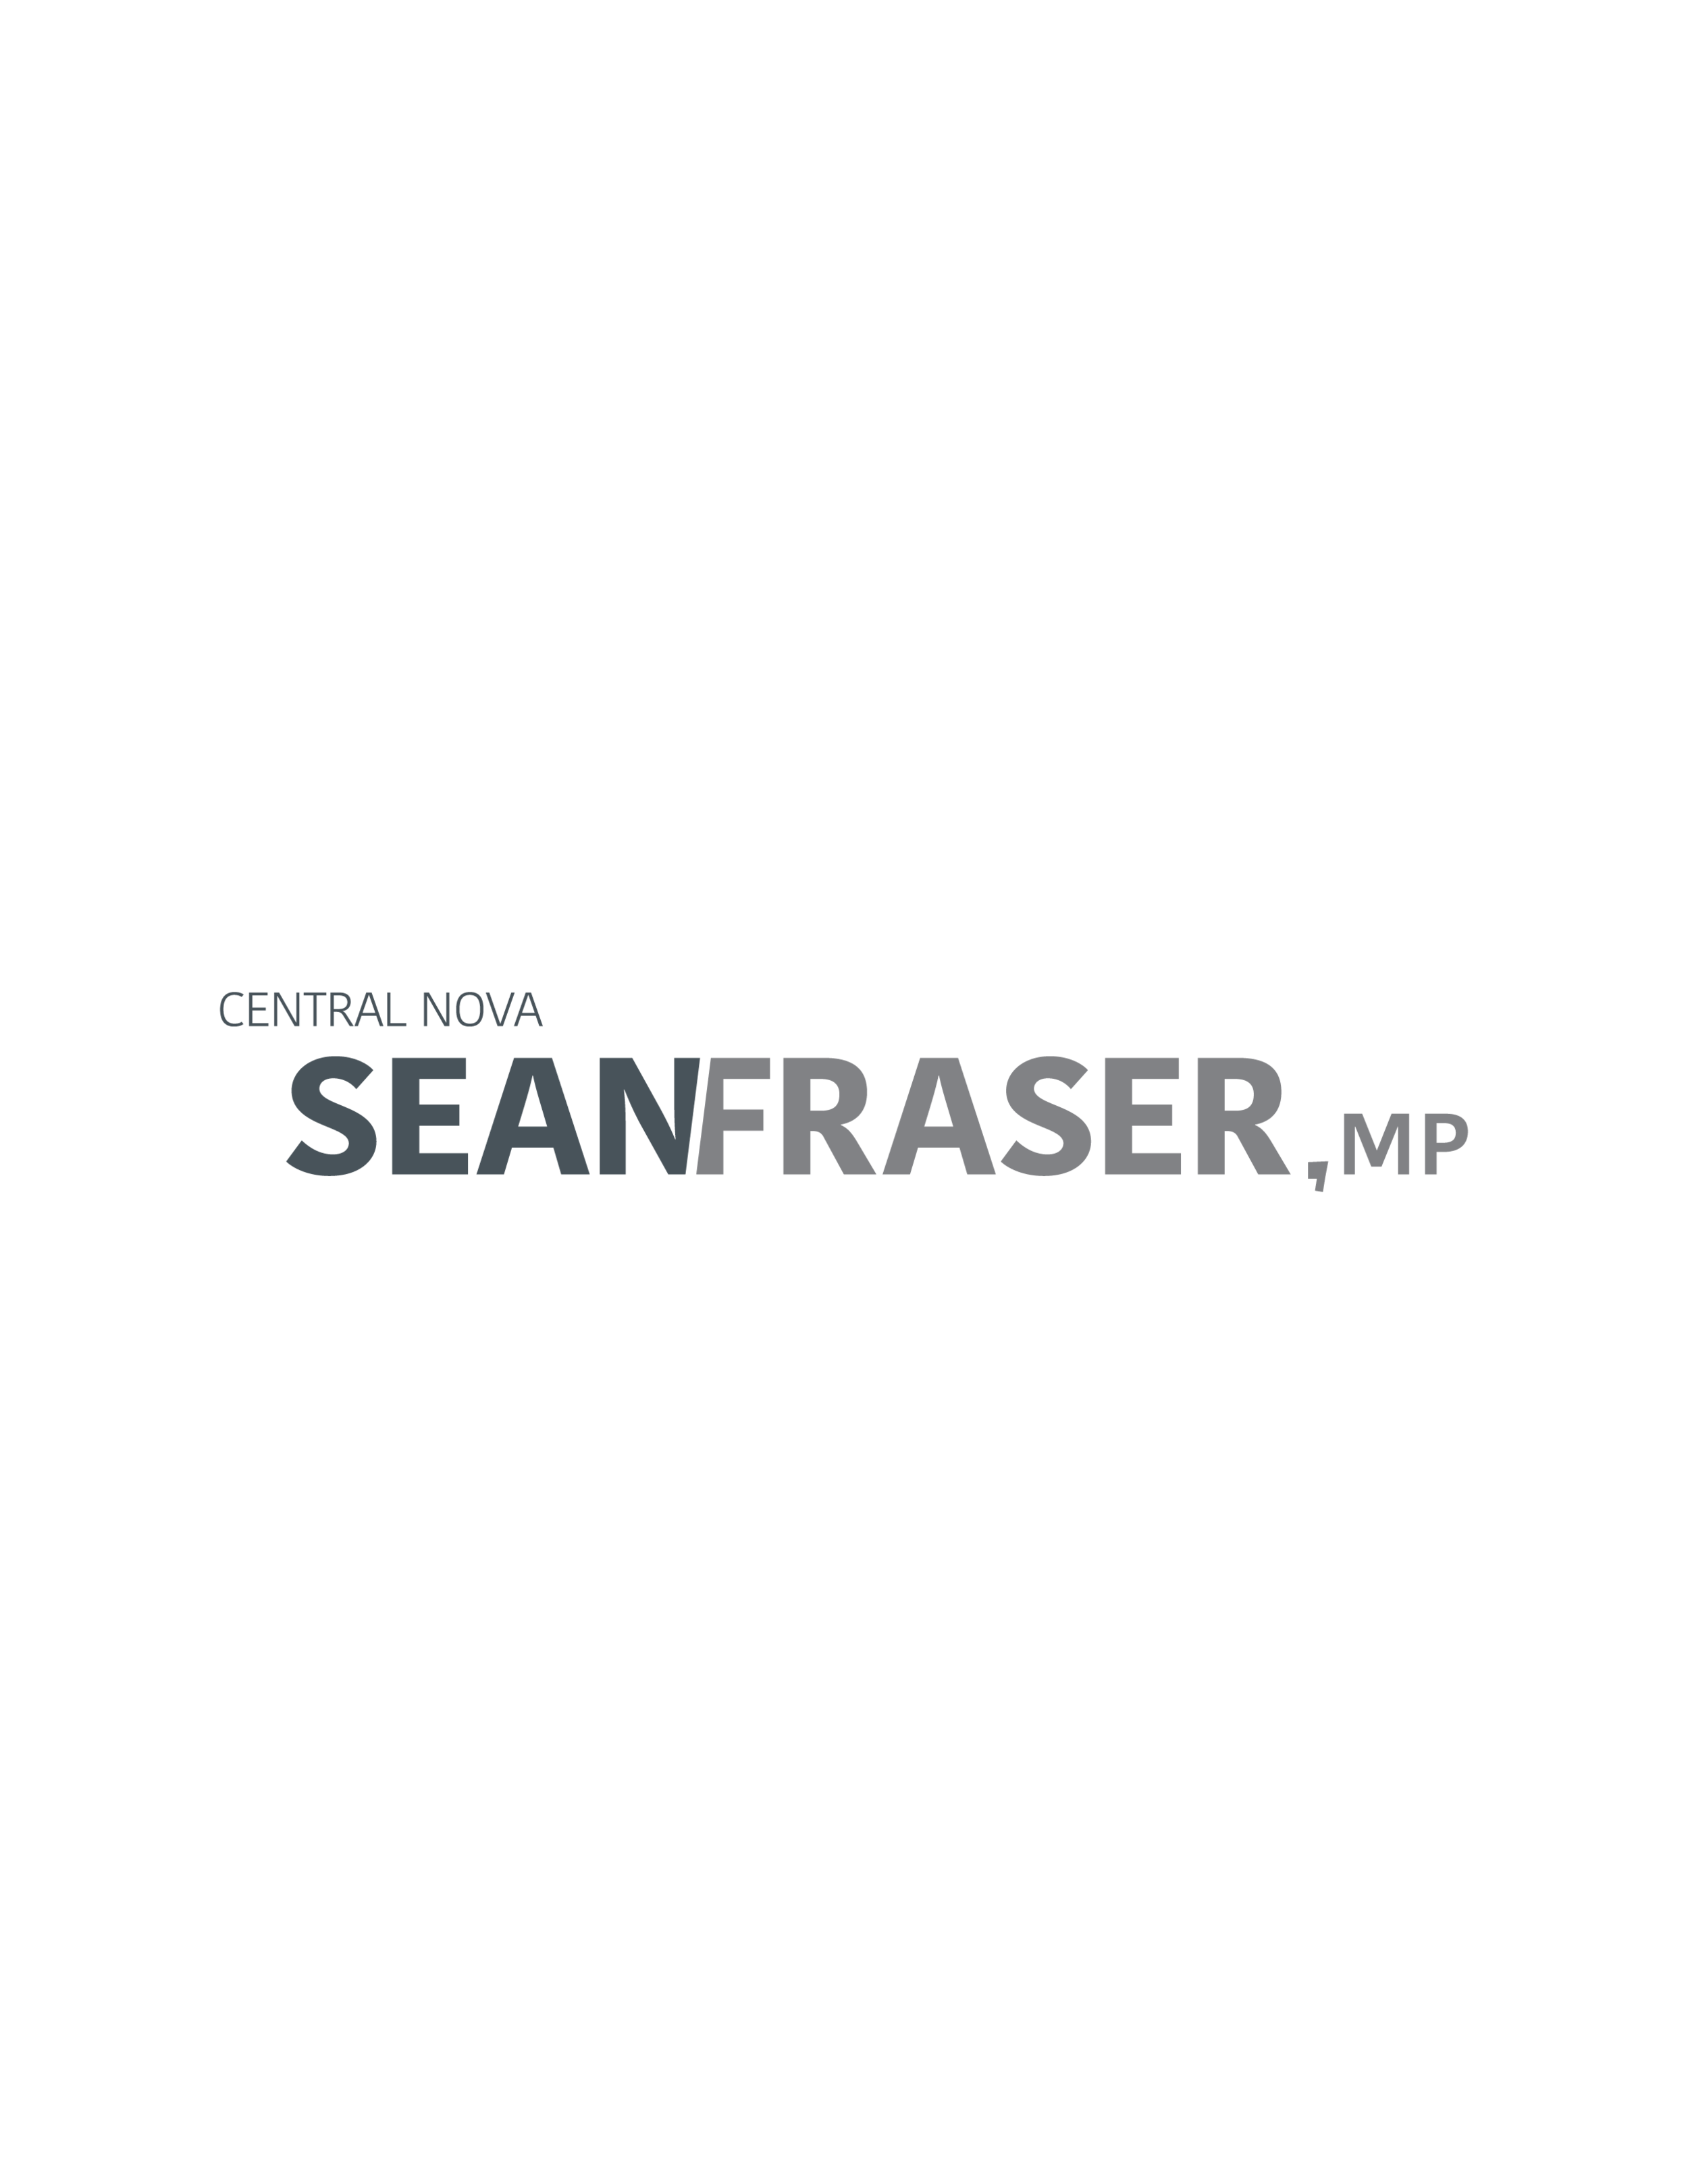 Sean Fraser Logo Central Nova Original 2.png